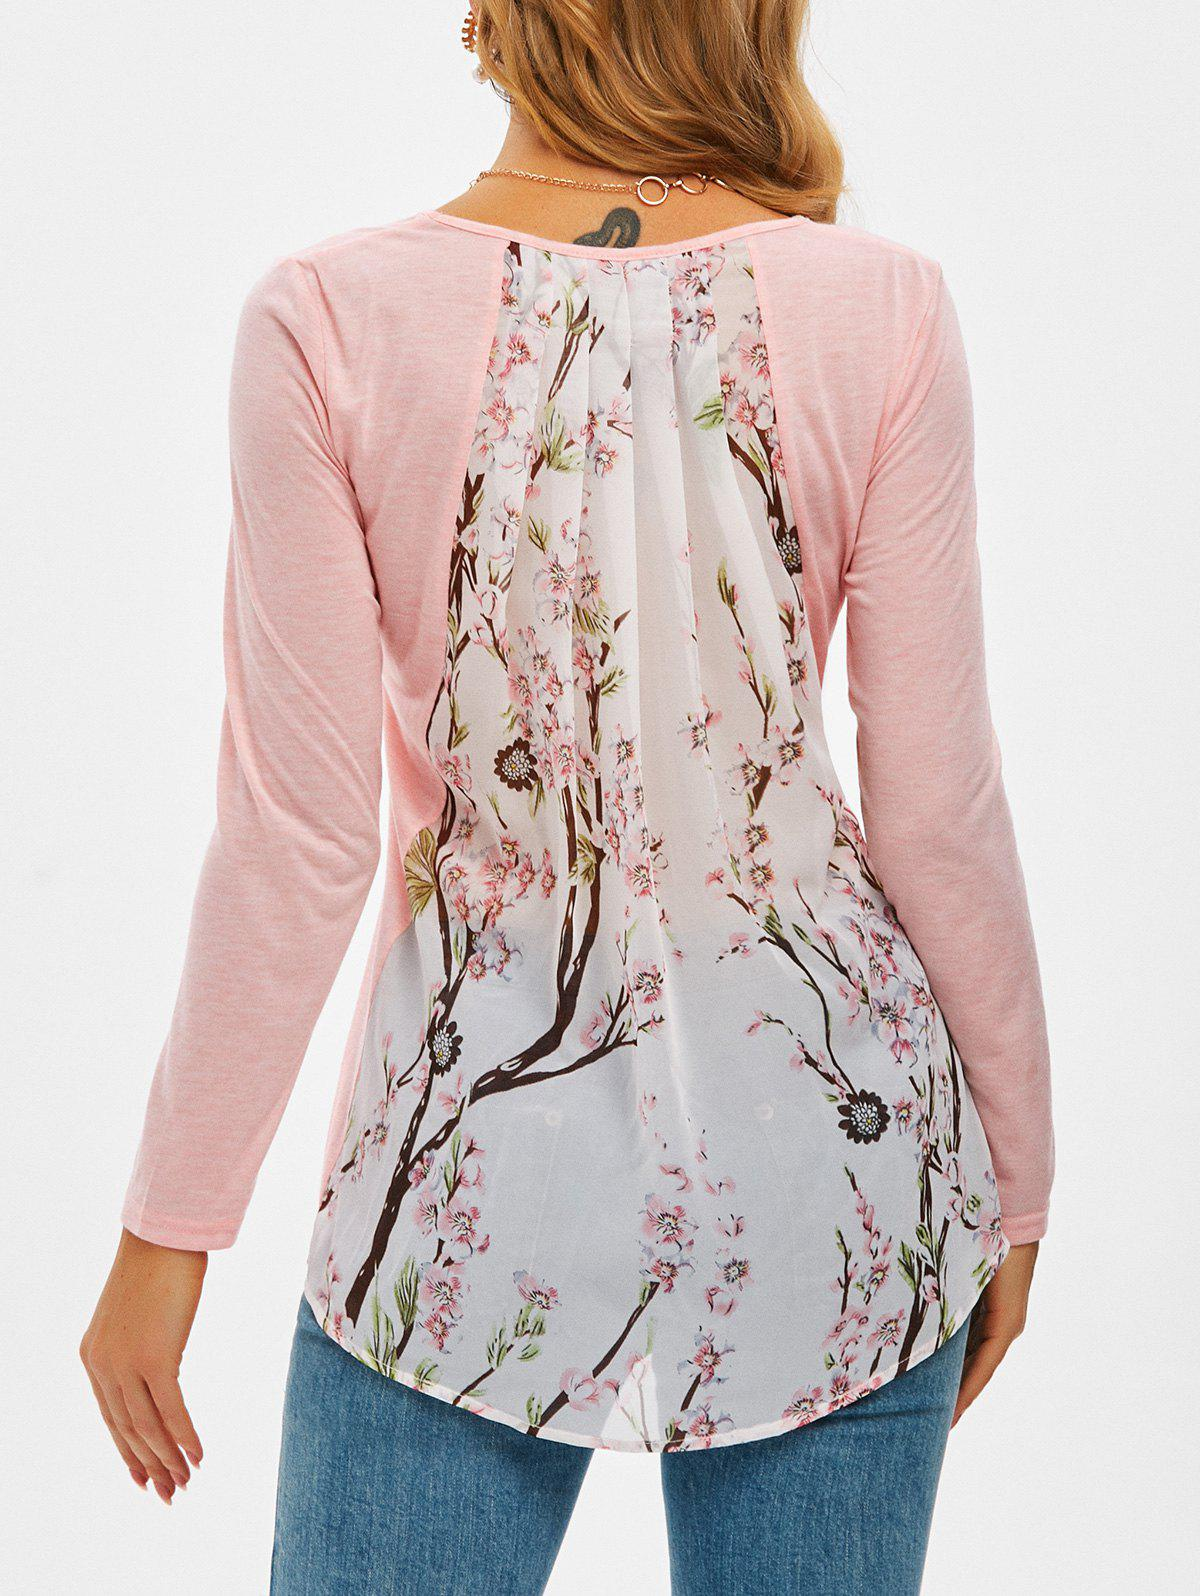 Peach Blossom Print Chiffon Panel High Low T Shirt - PINK 2XL